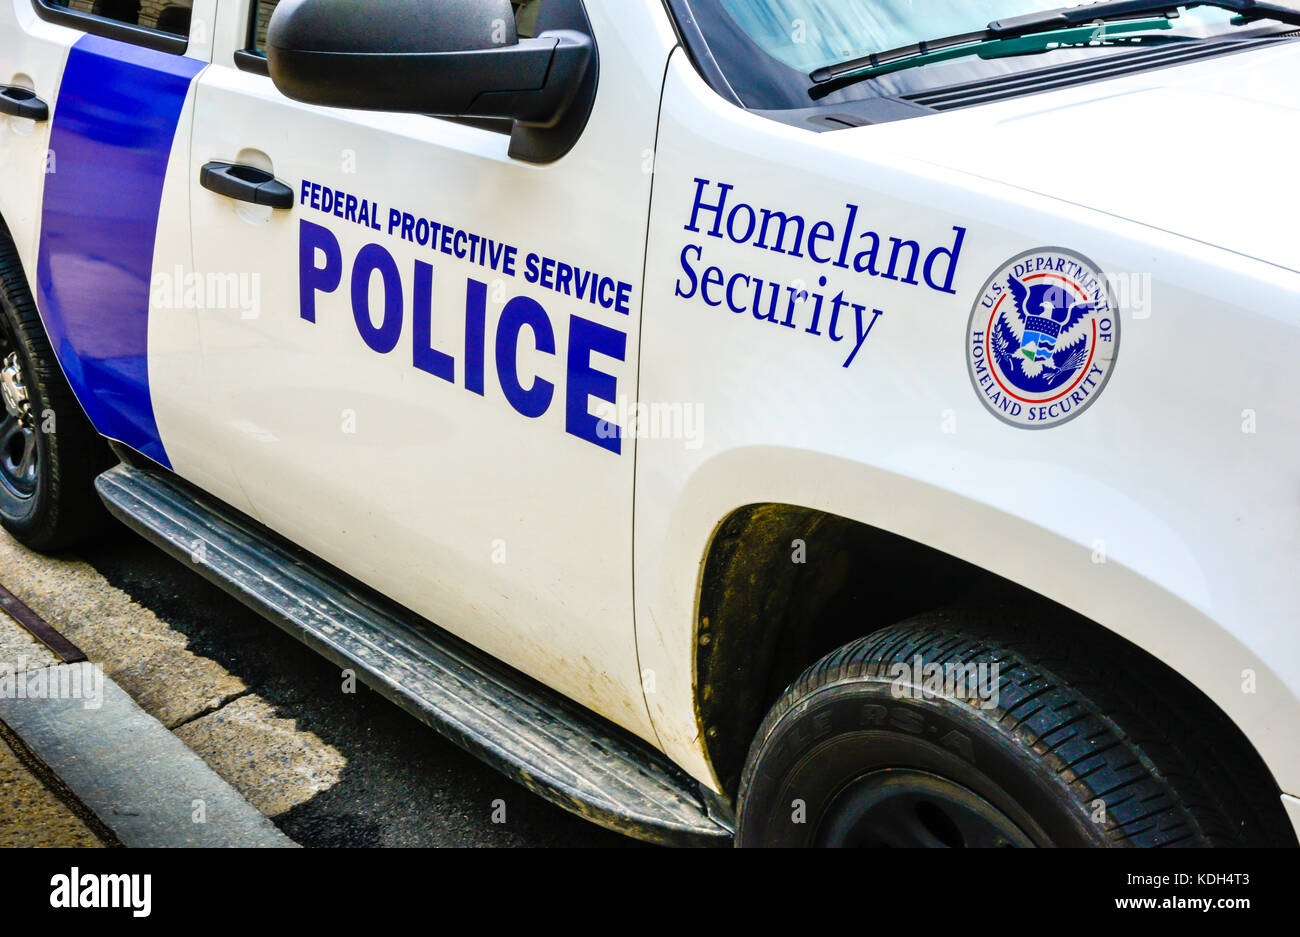 Detail of a Homeland Security Federal Protective Service Police car in Washington, DC, USA - Stock Image